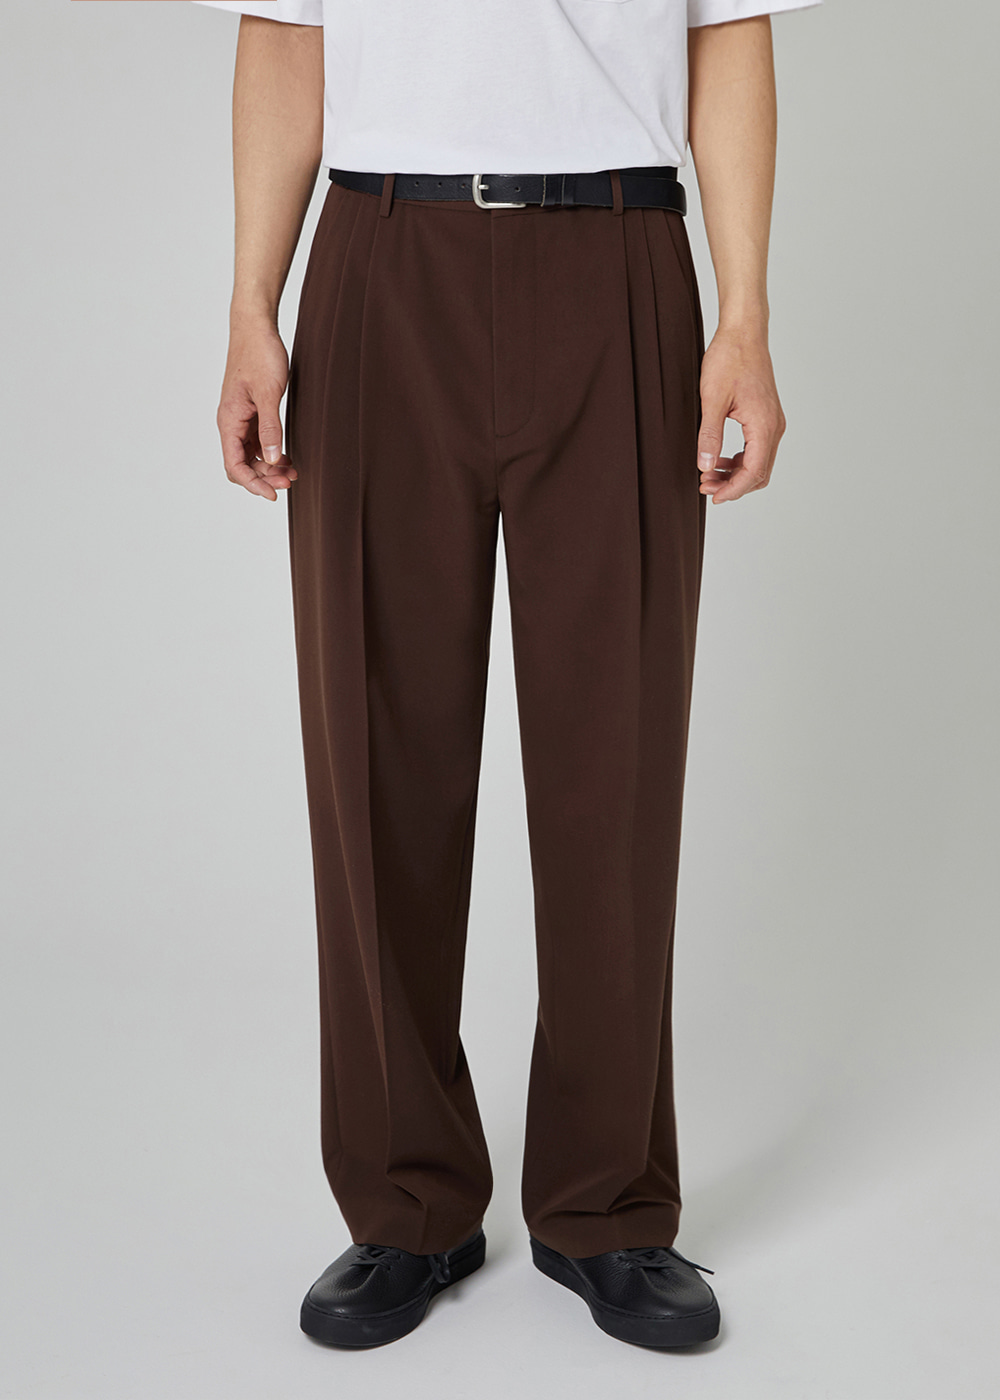 TWO TUCK SLACKS [BROWN]